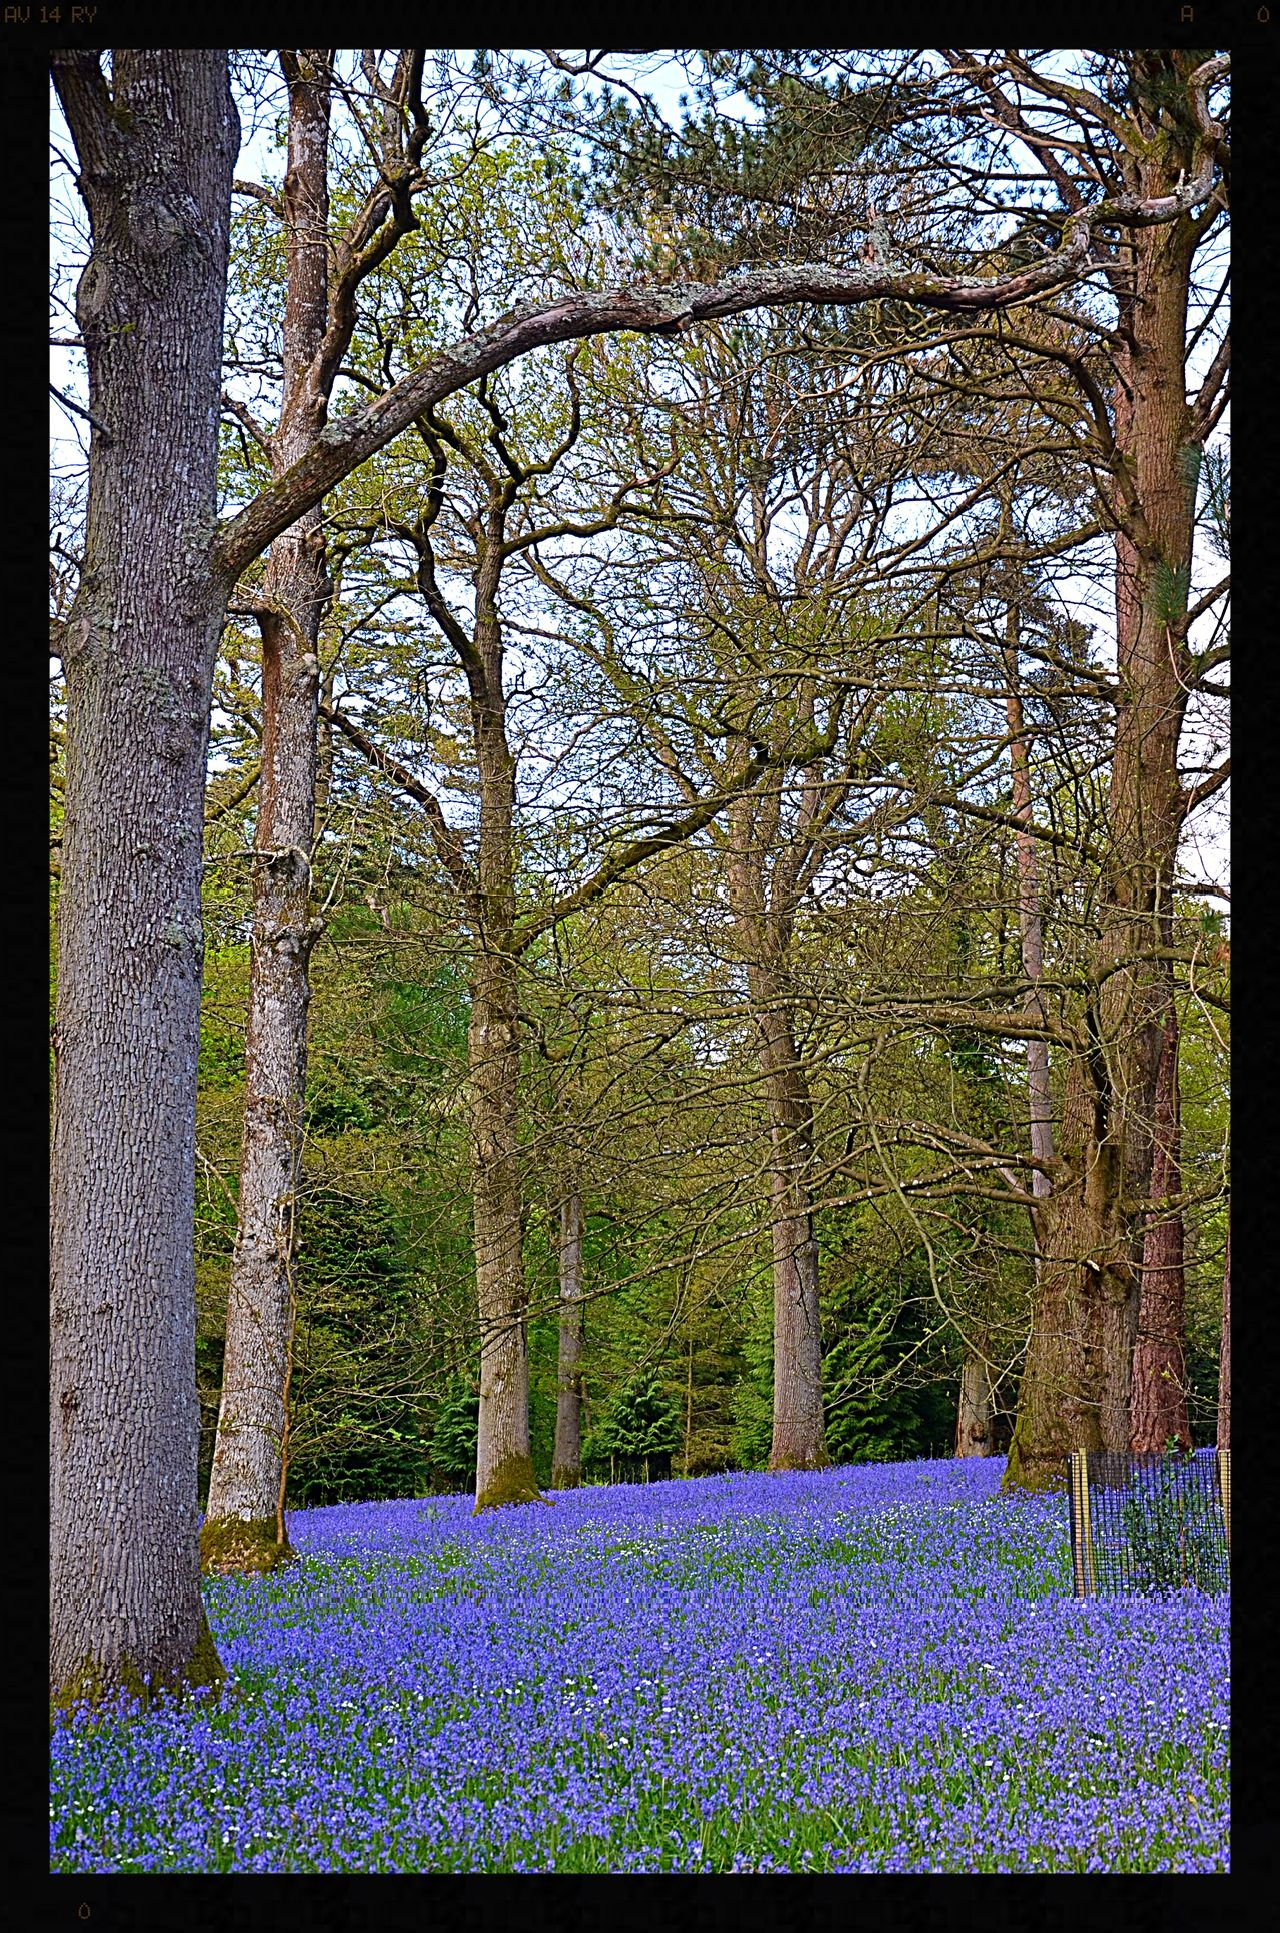 Beauty In Nature Bluebell Wood Bluebells Bluebells, Spring, Springtim Flowers Flowers, Nature And Beauty Flowers,Plants & Garden Nature No People Tranquility Tree